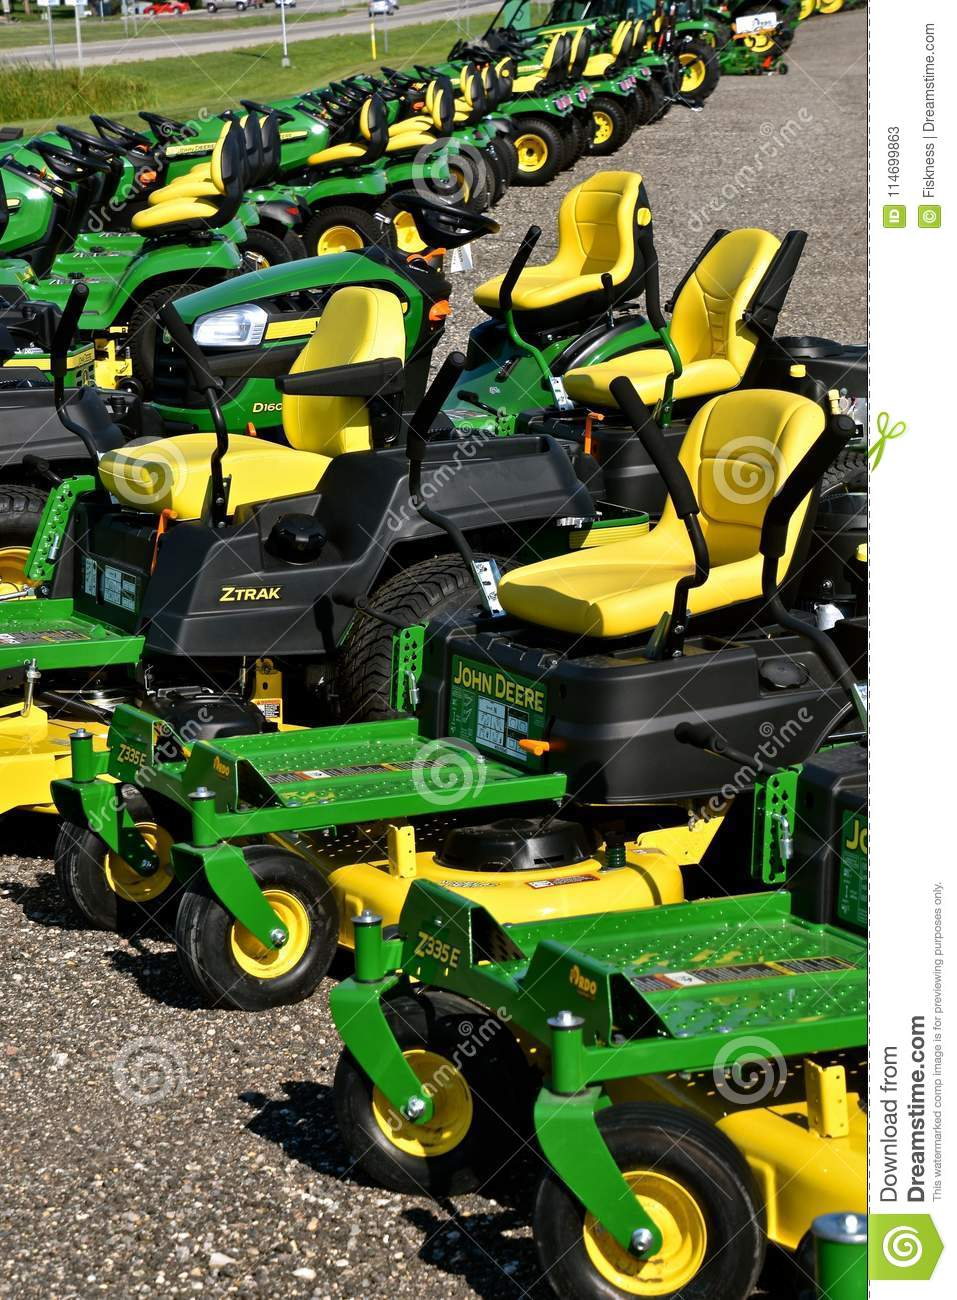 hight resolution of hawley minnesota august 22 2017 a row of green and yellow new riding lawn mower tractors are products of john deere co an american corporation that